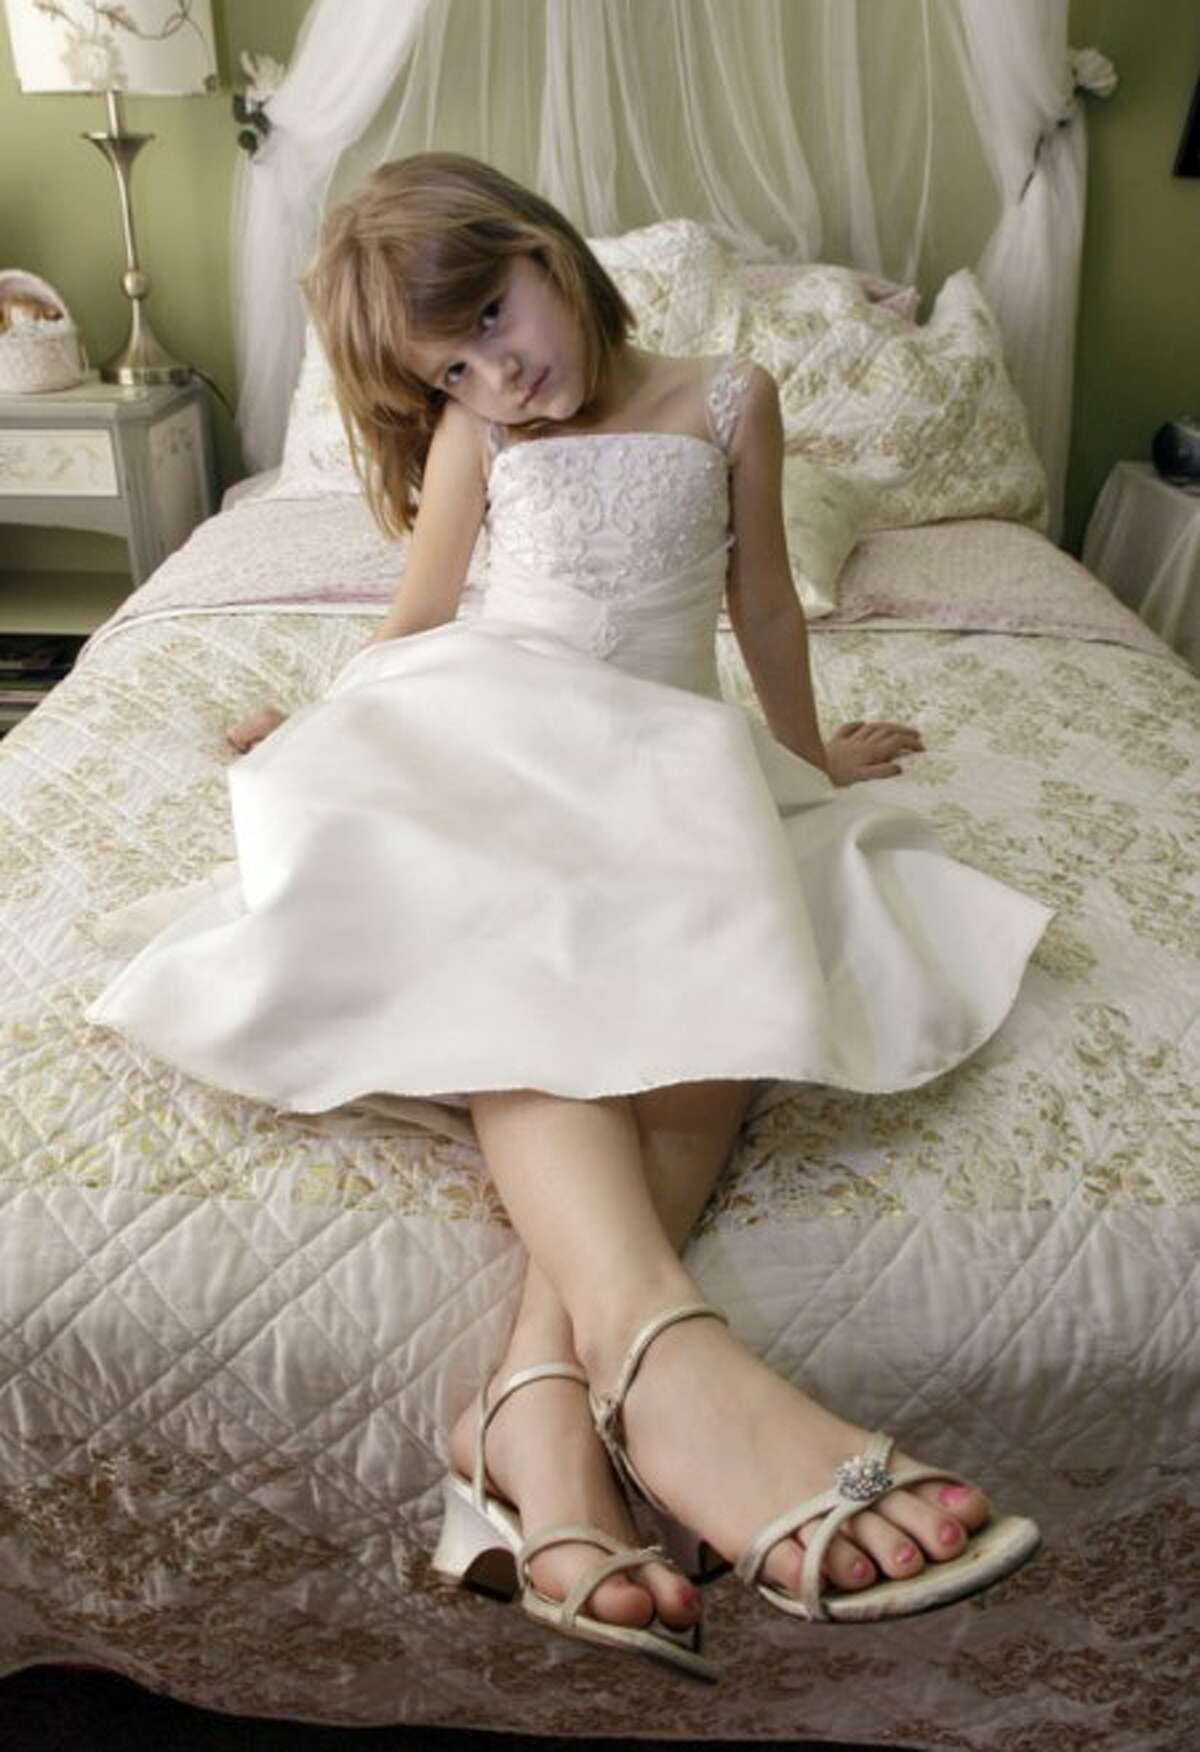 Six-year-old Helena Bell posses in her short high-heeled shoes at her home in Los Angeles Tuesday, Jan. 12, 2010. Helena first wore the heels as flower girl at a wedding about six months ago. Since then, she loves to wear the shoes - and her flower girl dress - to church on Sundays, and other